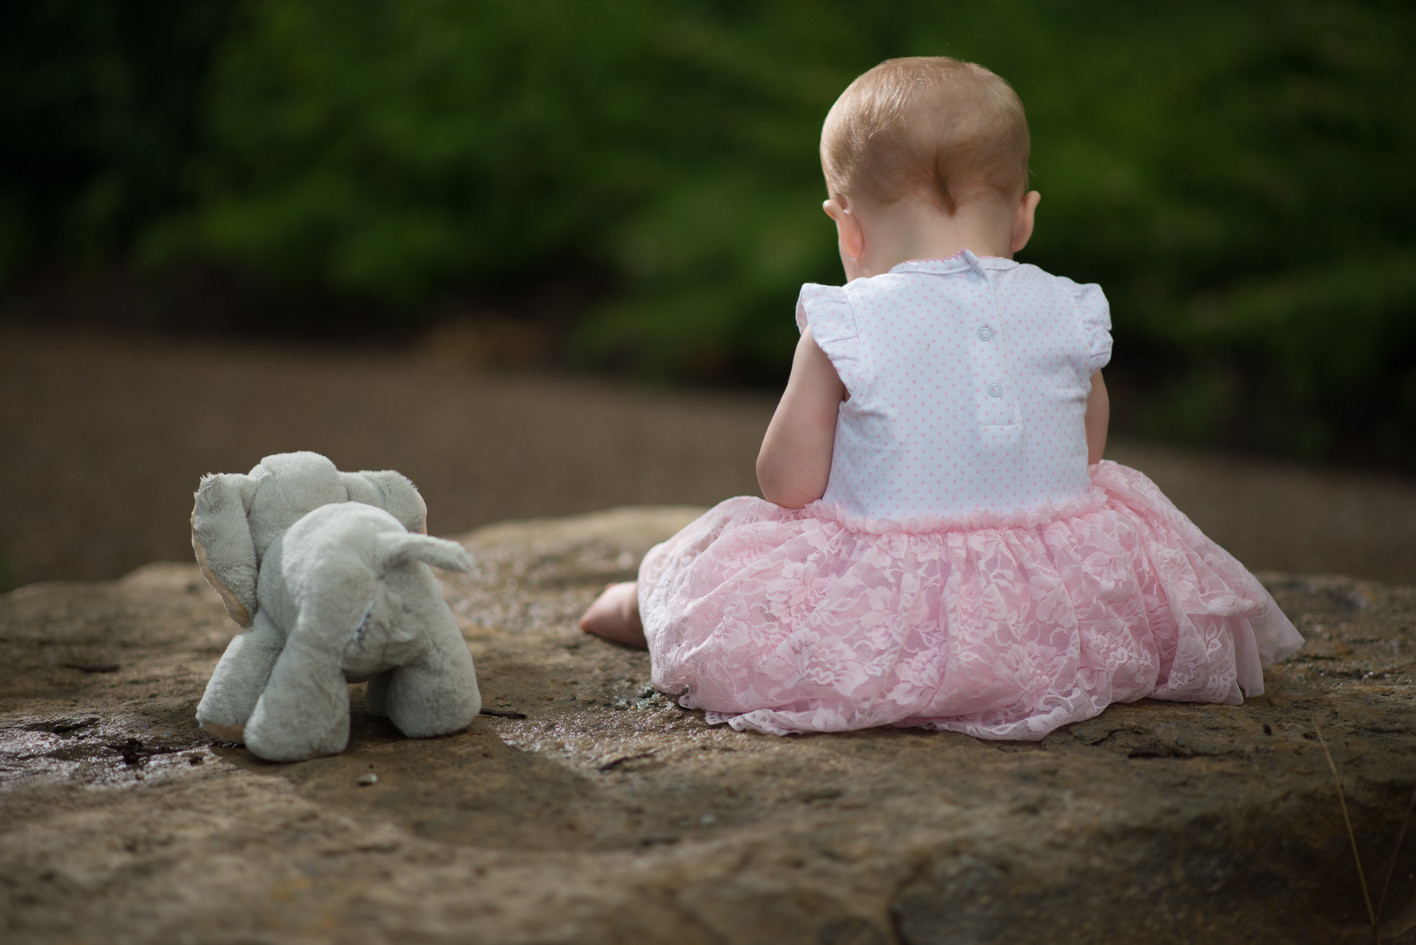 Baby photograph with stuffed animal